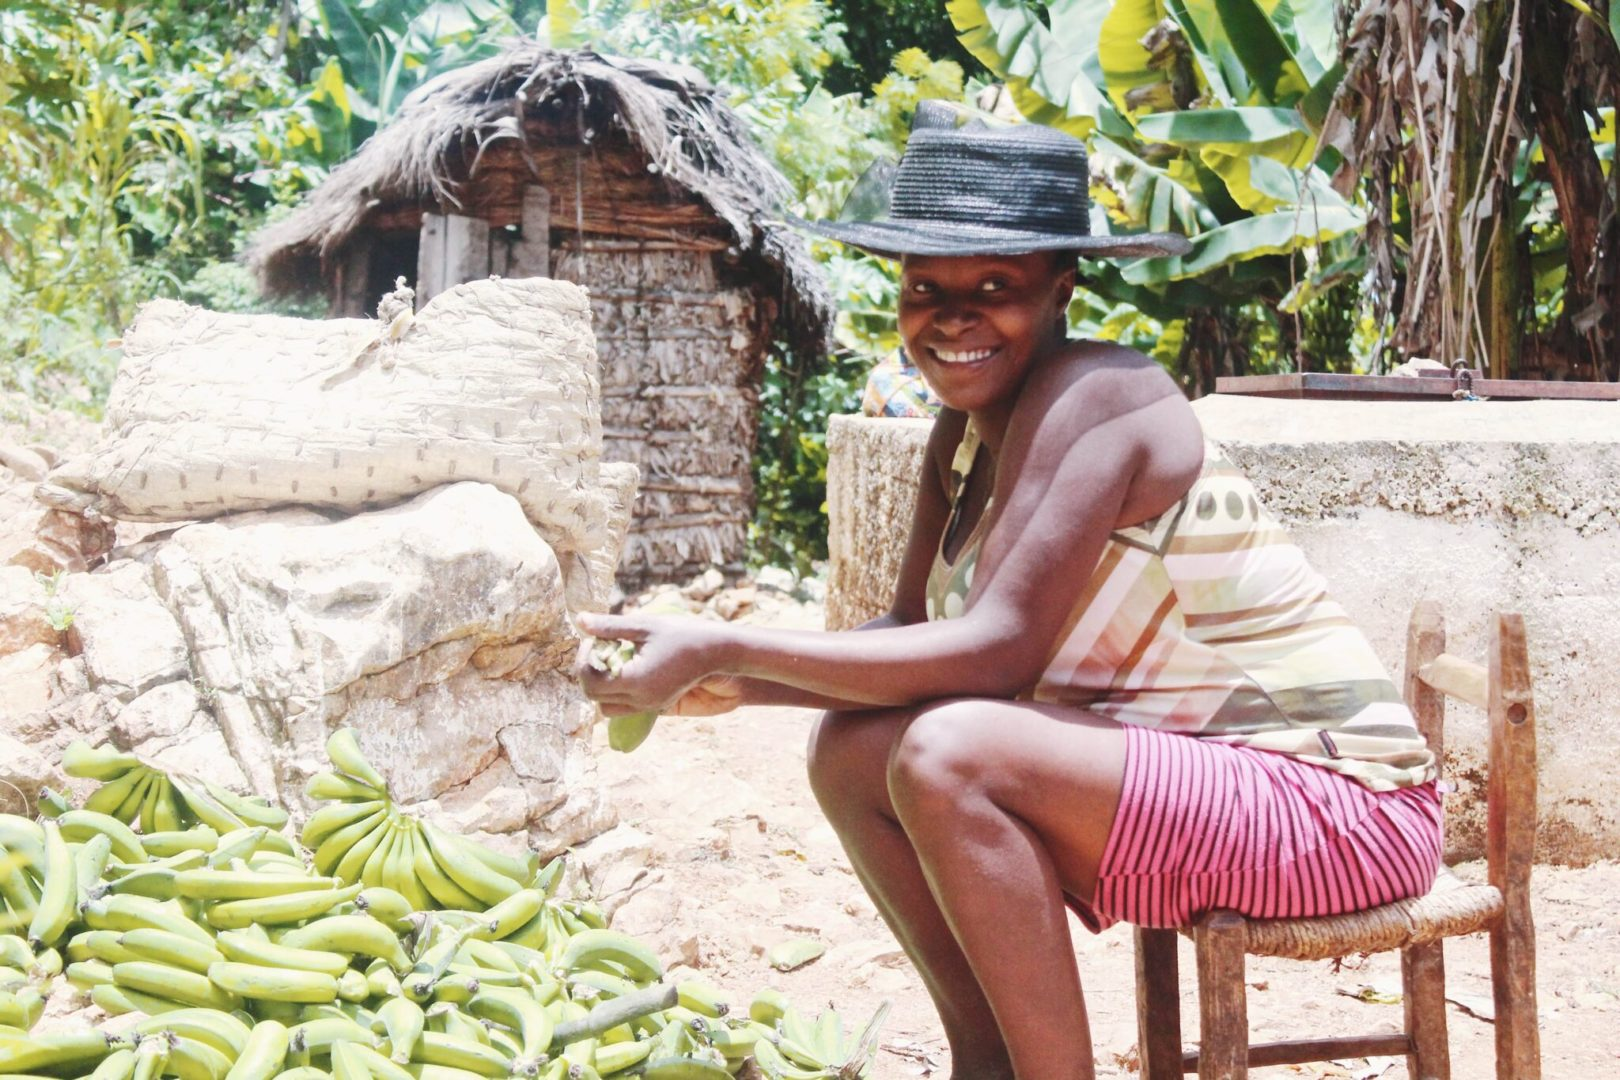 A young woman sorts a banana harvest.